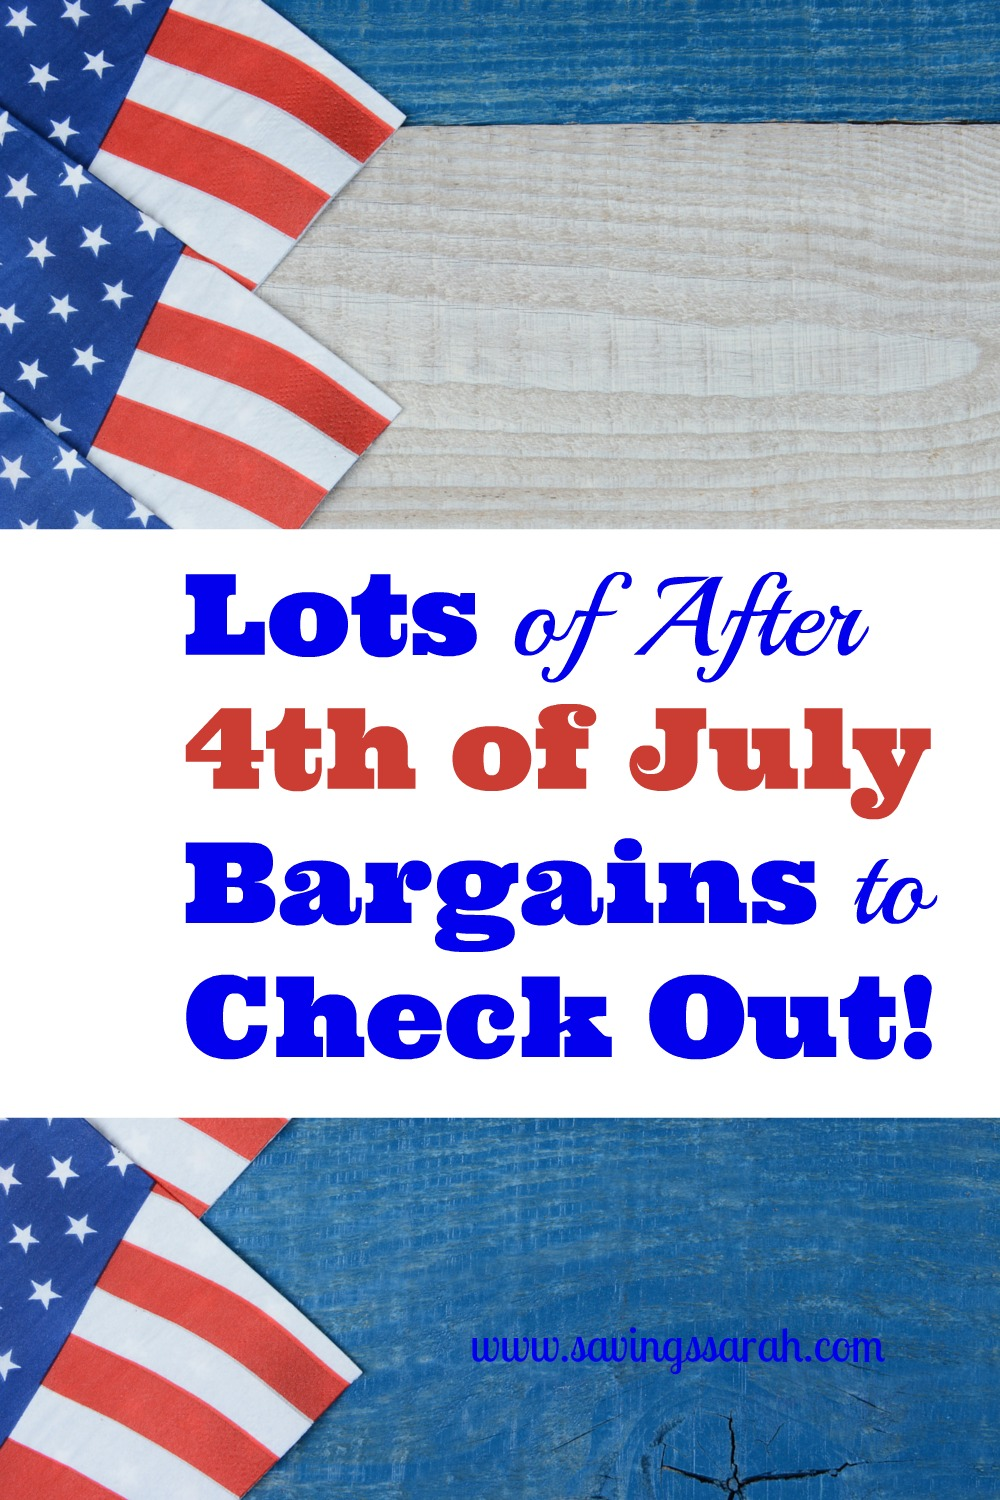 Lots of After 4th of July Bargains to Check Out!